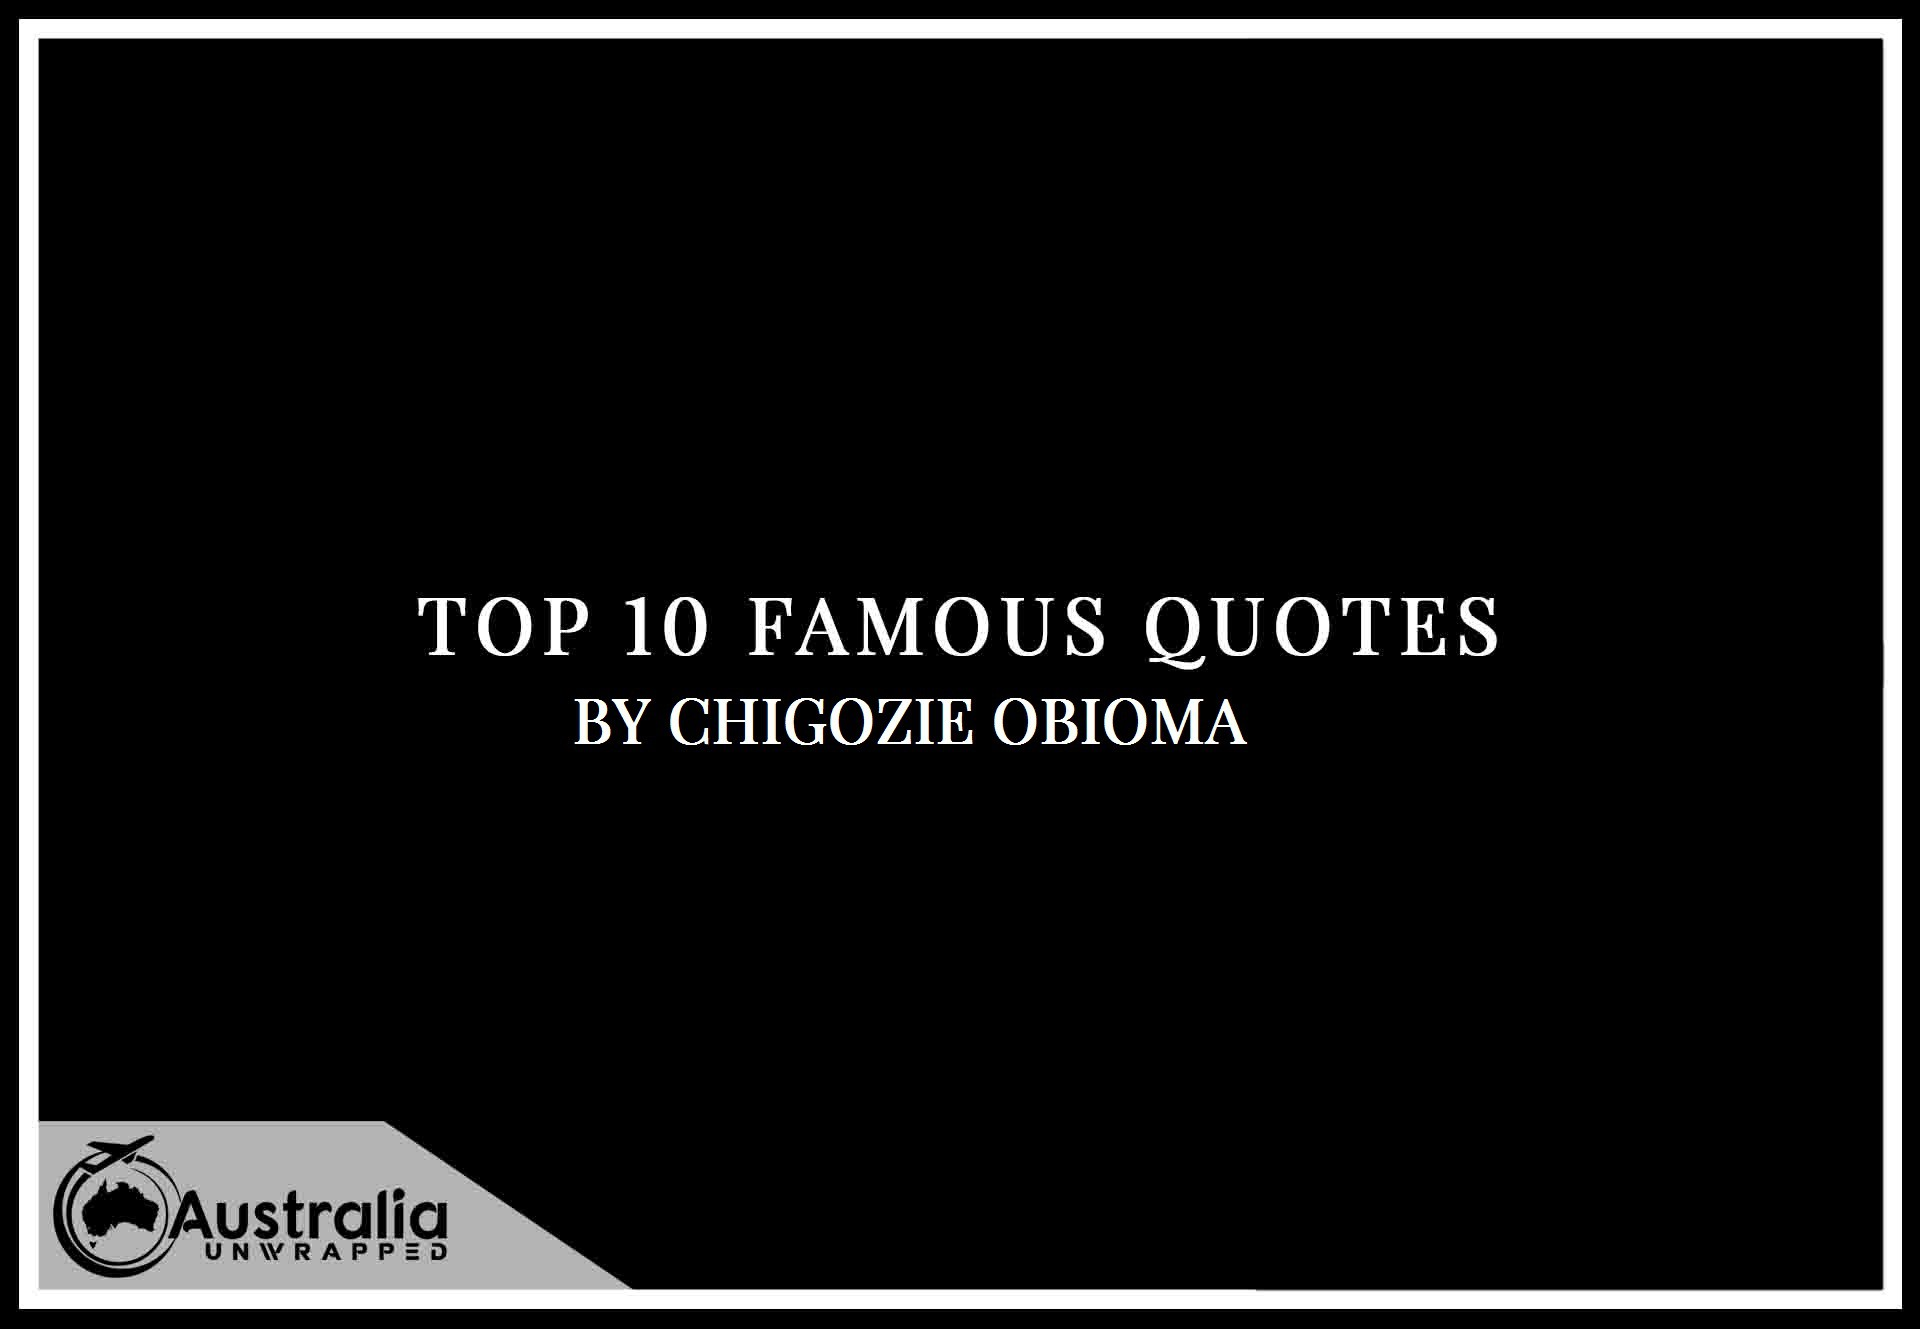 Chigozie Obioma's Top 10 Popular and Famous Quotes